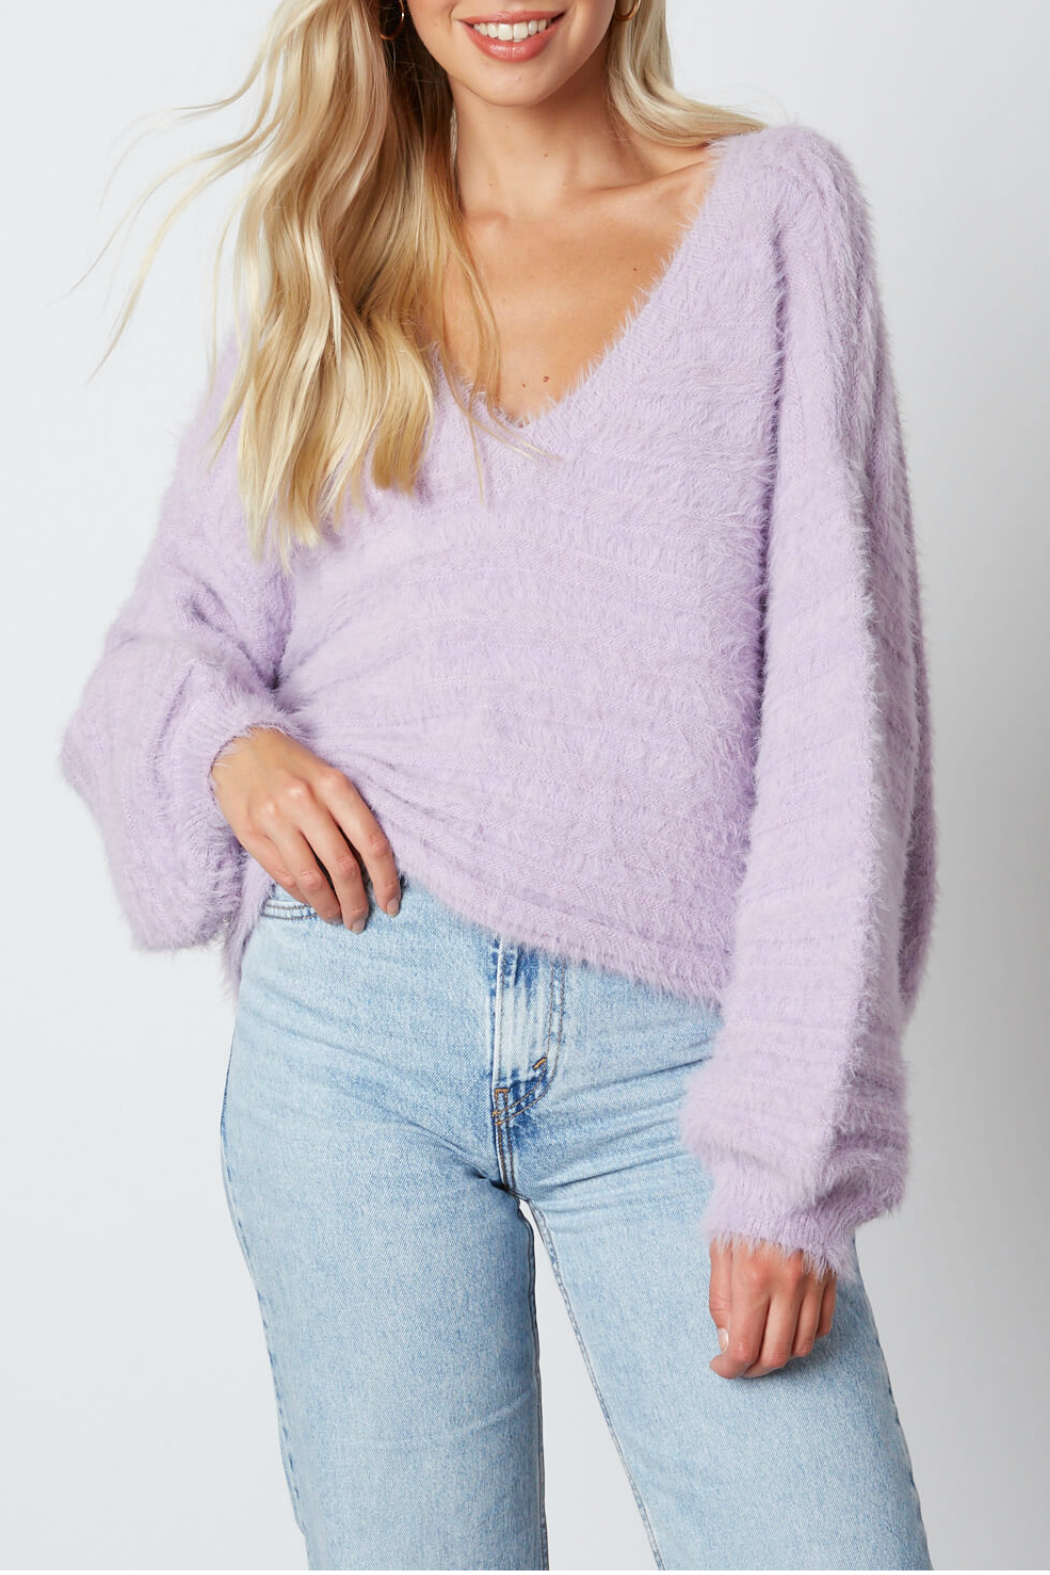 Cotton Candy LA Fuzzy sweater - Main Image